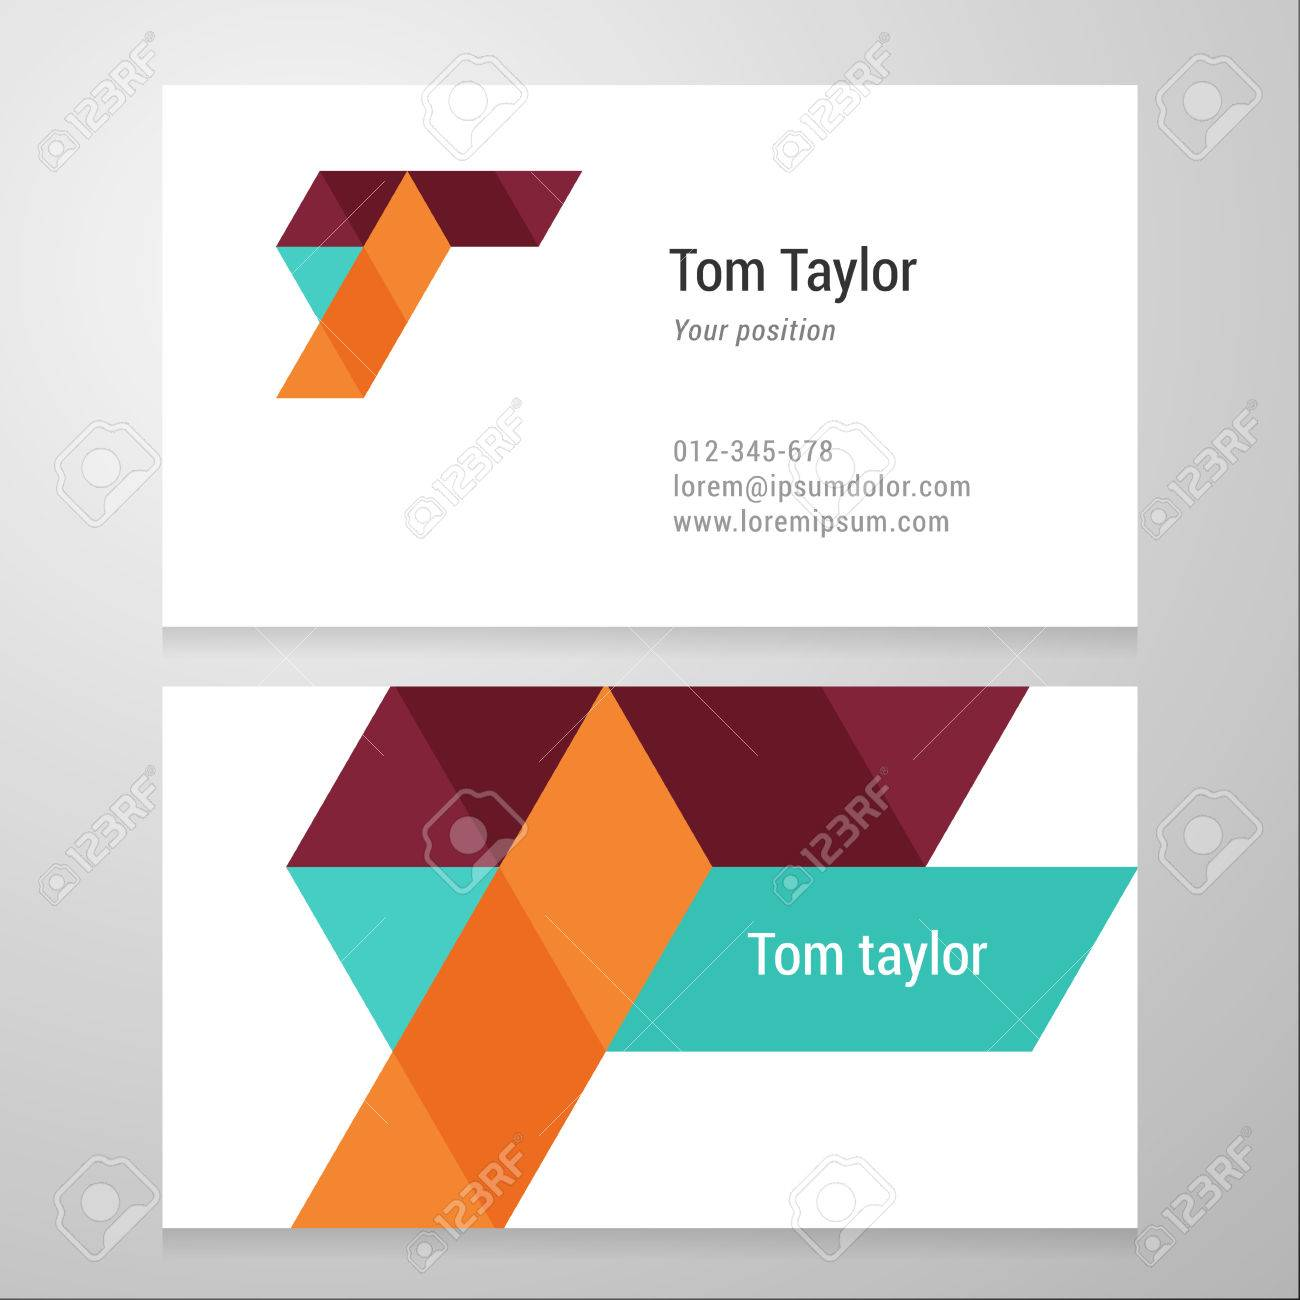 Unusual 1 Inch Hexagon Template Tiny 1 Page Resumes Examples Square 1.25 Button Template 10 Best Resumes Youthful 10 Tips To Making A Resume Yellow100 Dollar Bill Template Modern Letter T Business Card Template. Vector Design. Layered ..